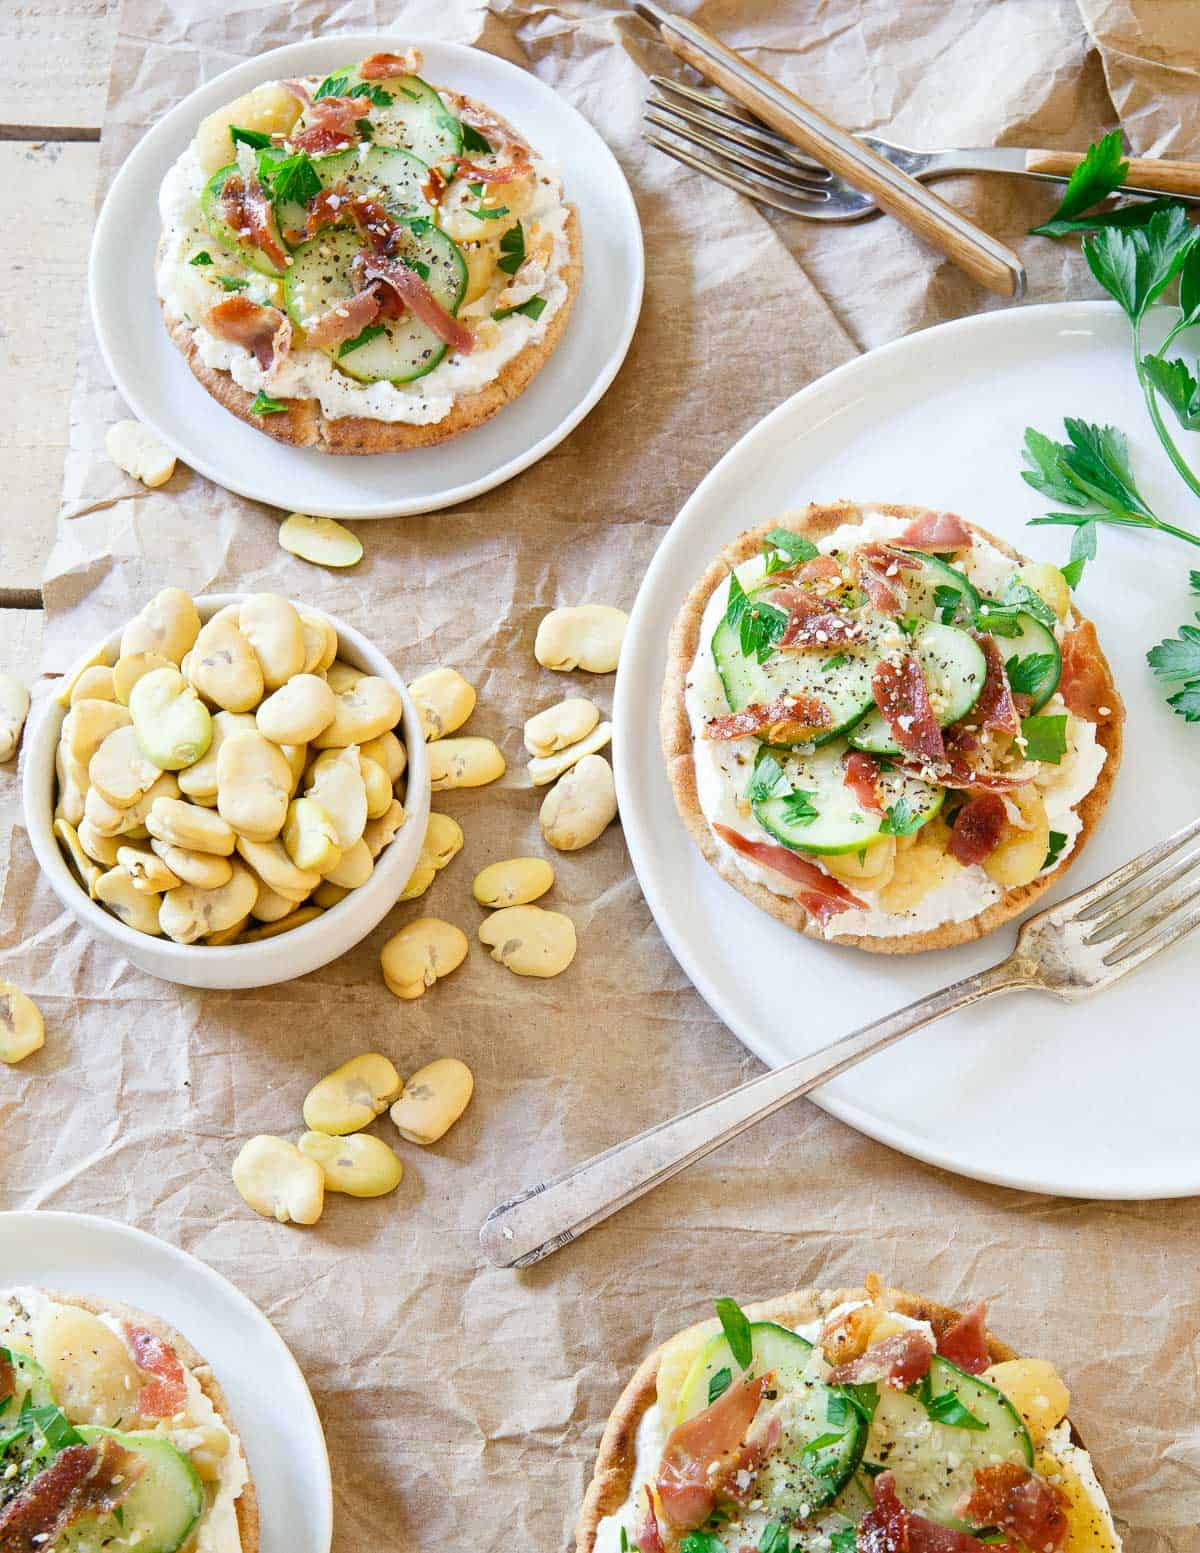 These fava bean grilled pita bites are layered with a base of creamy ricotta, tangy pickled cucumbers and crisp salty prosciutto. They make a sensational bite for a light lunch or appetizer!